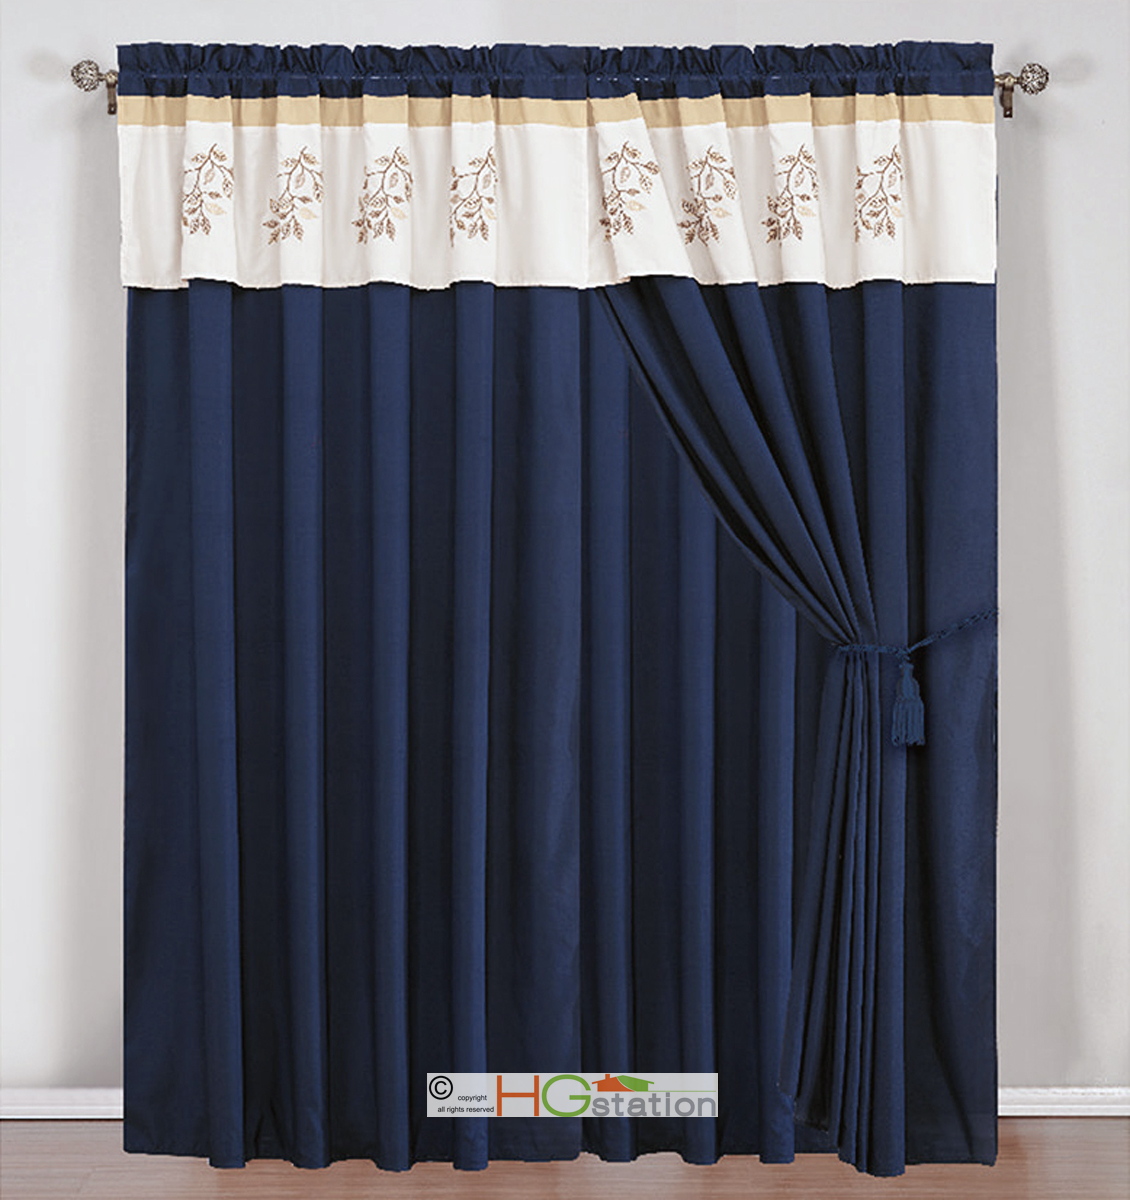 4 Sea Breeze Leaves Embroidery Curtain Set Ivory Navy Blue ...